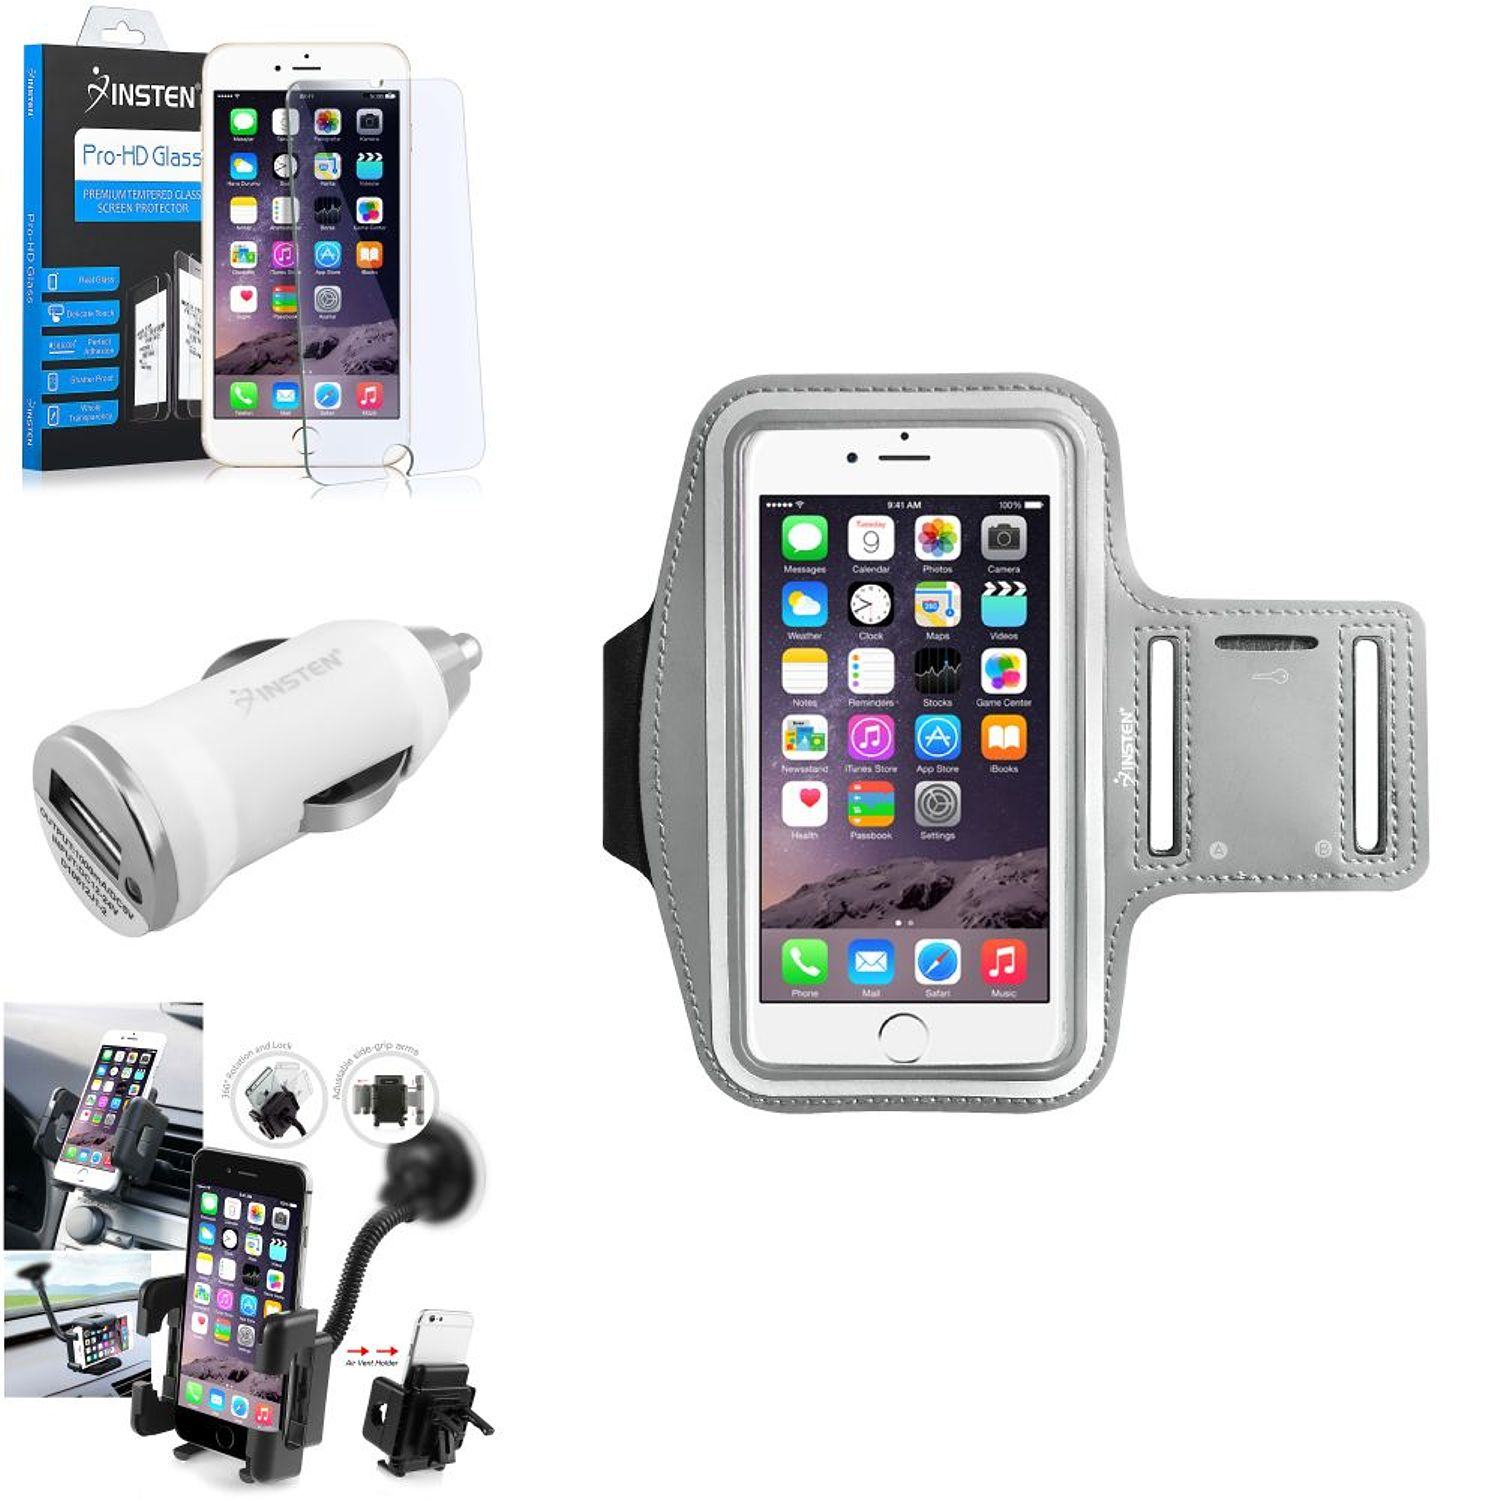 Insten Silver Sports Armband Case Skin Cover Protector Car Accessory For iPhone 6S Plus 6 Plus 5.5